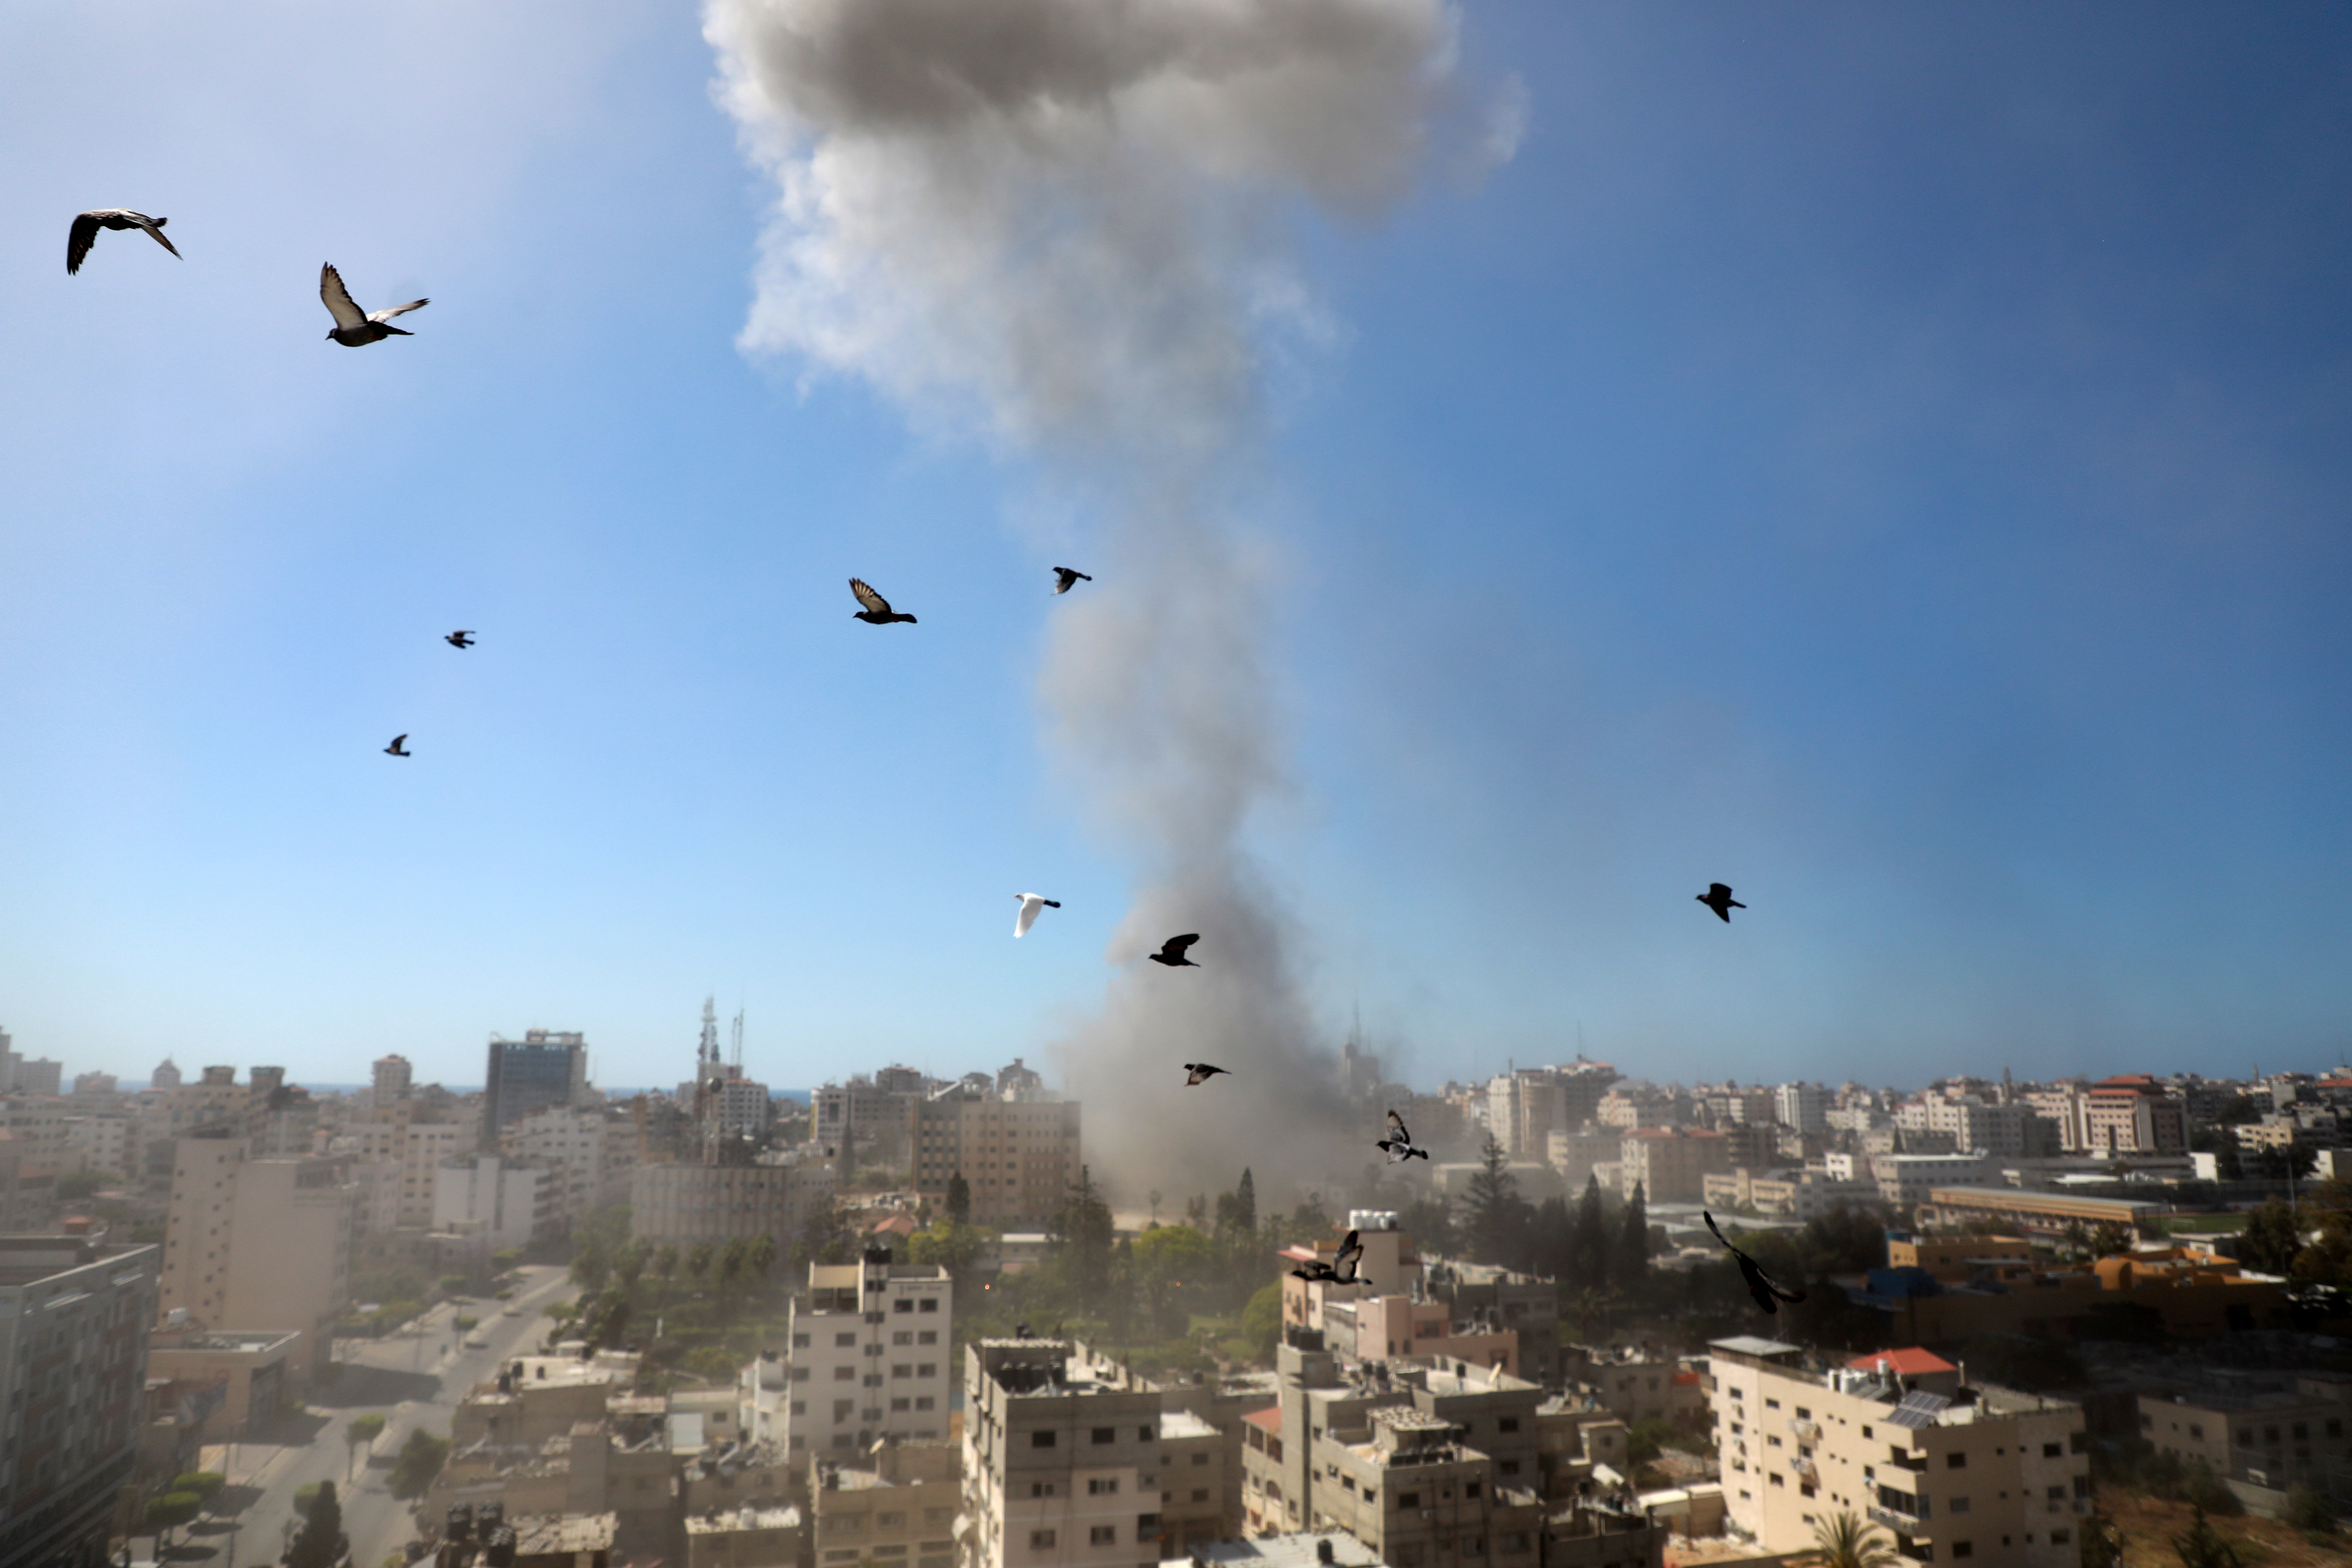 A thick column of smoke rises from the al-Jalaa Tower in Gaza as it is destroyed by an Israeli airstrike.